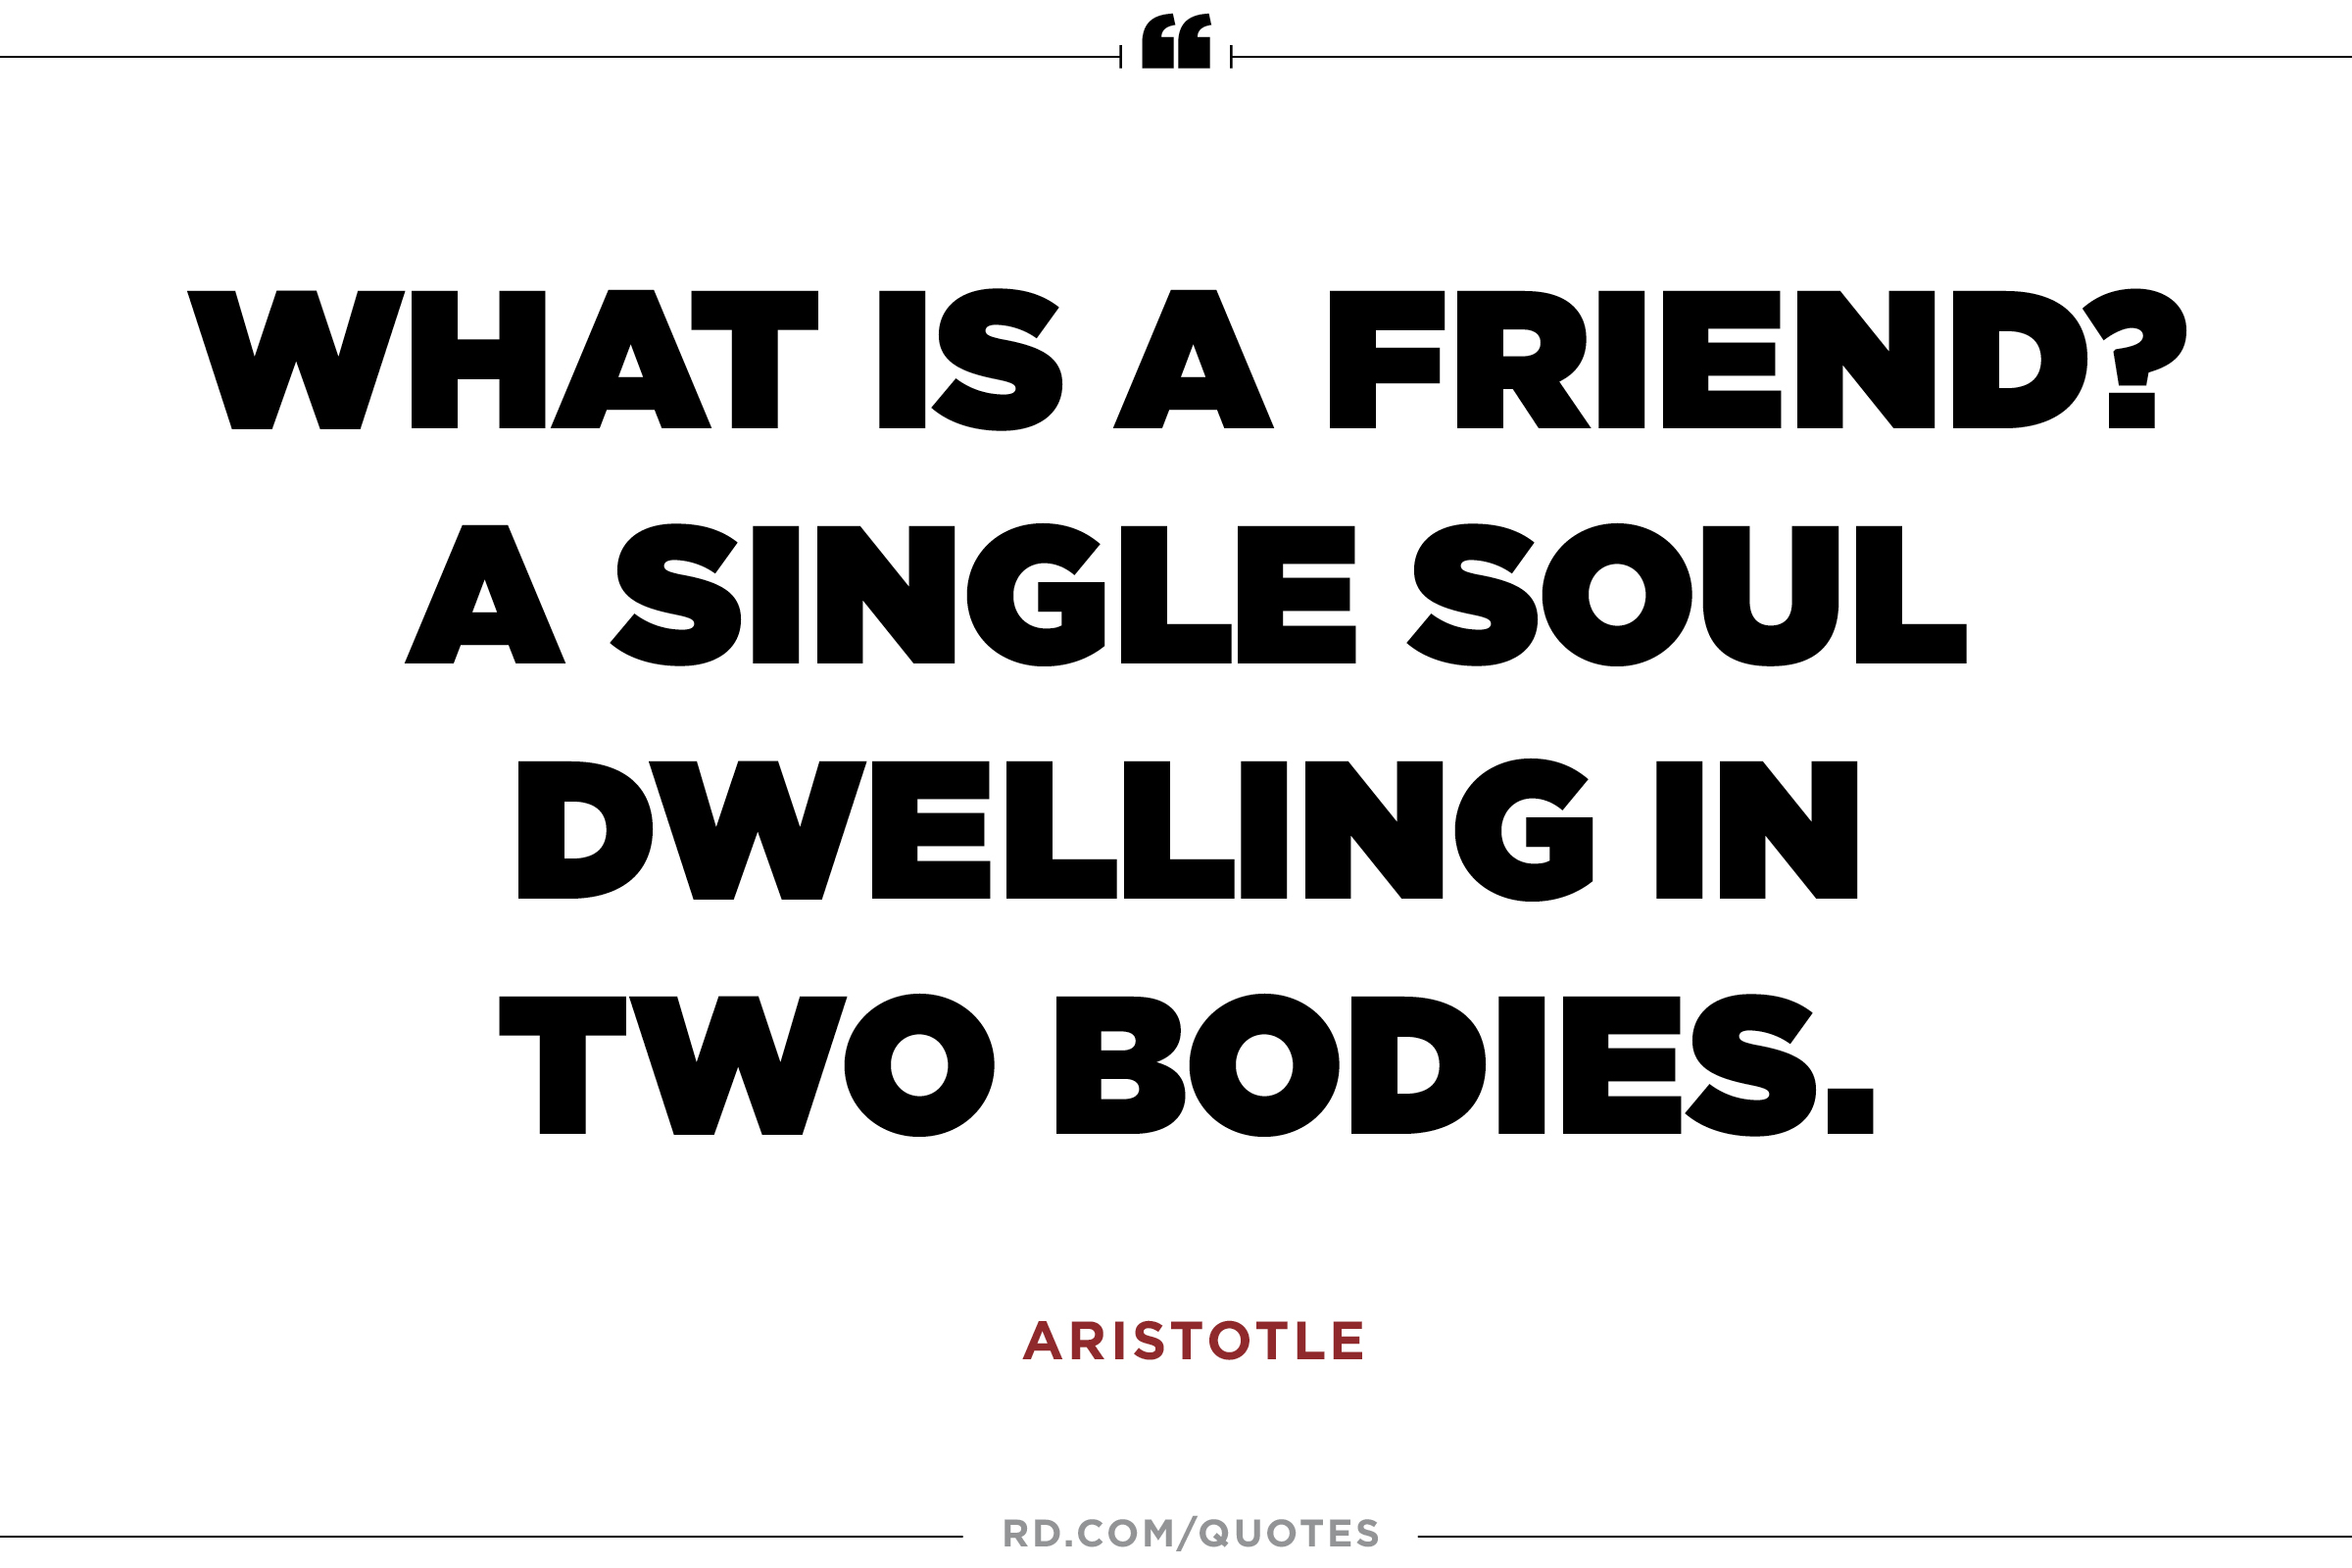 A single soul dwelling in two bodies. Aristotle